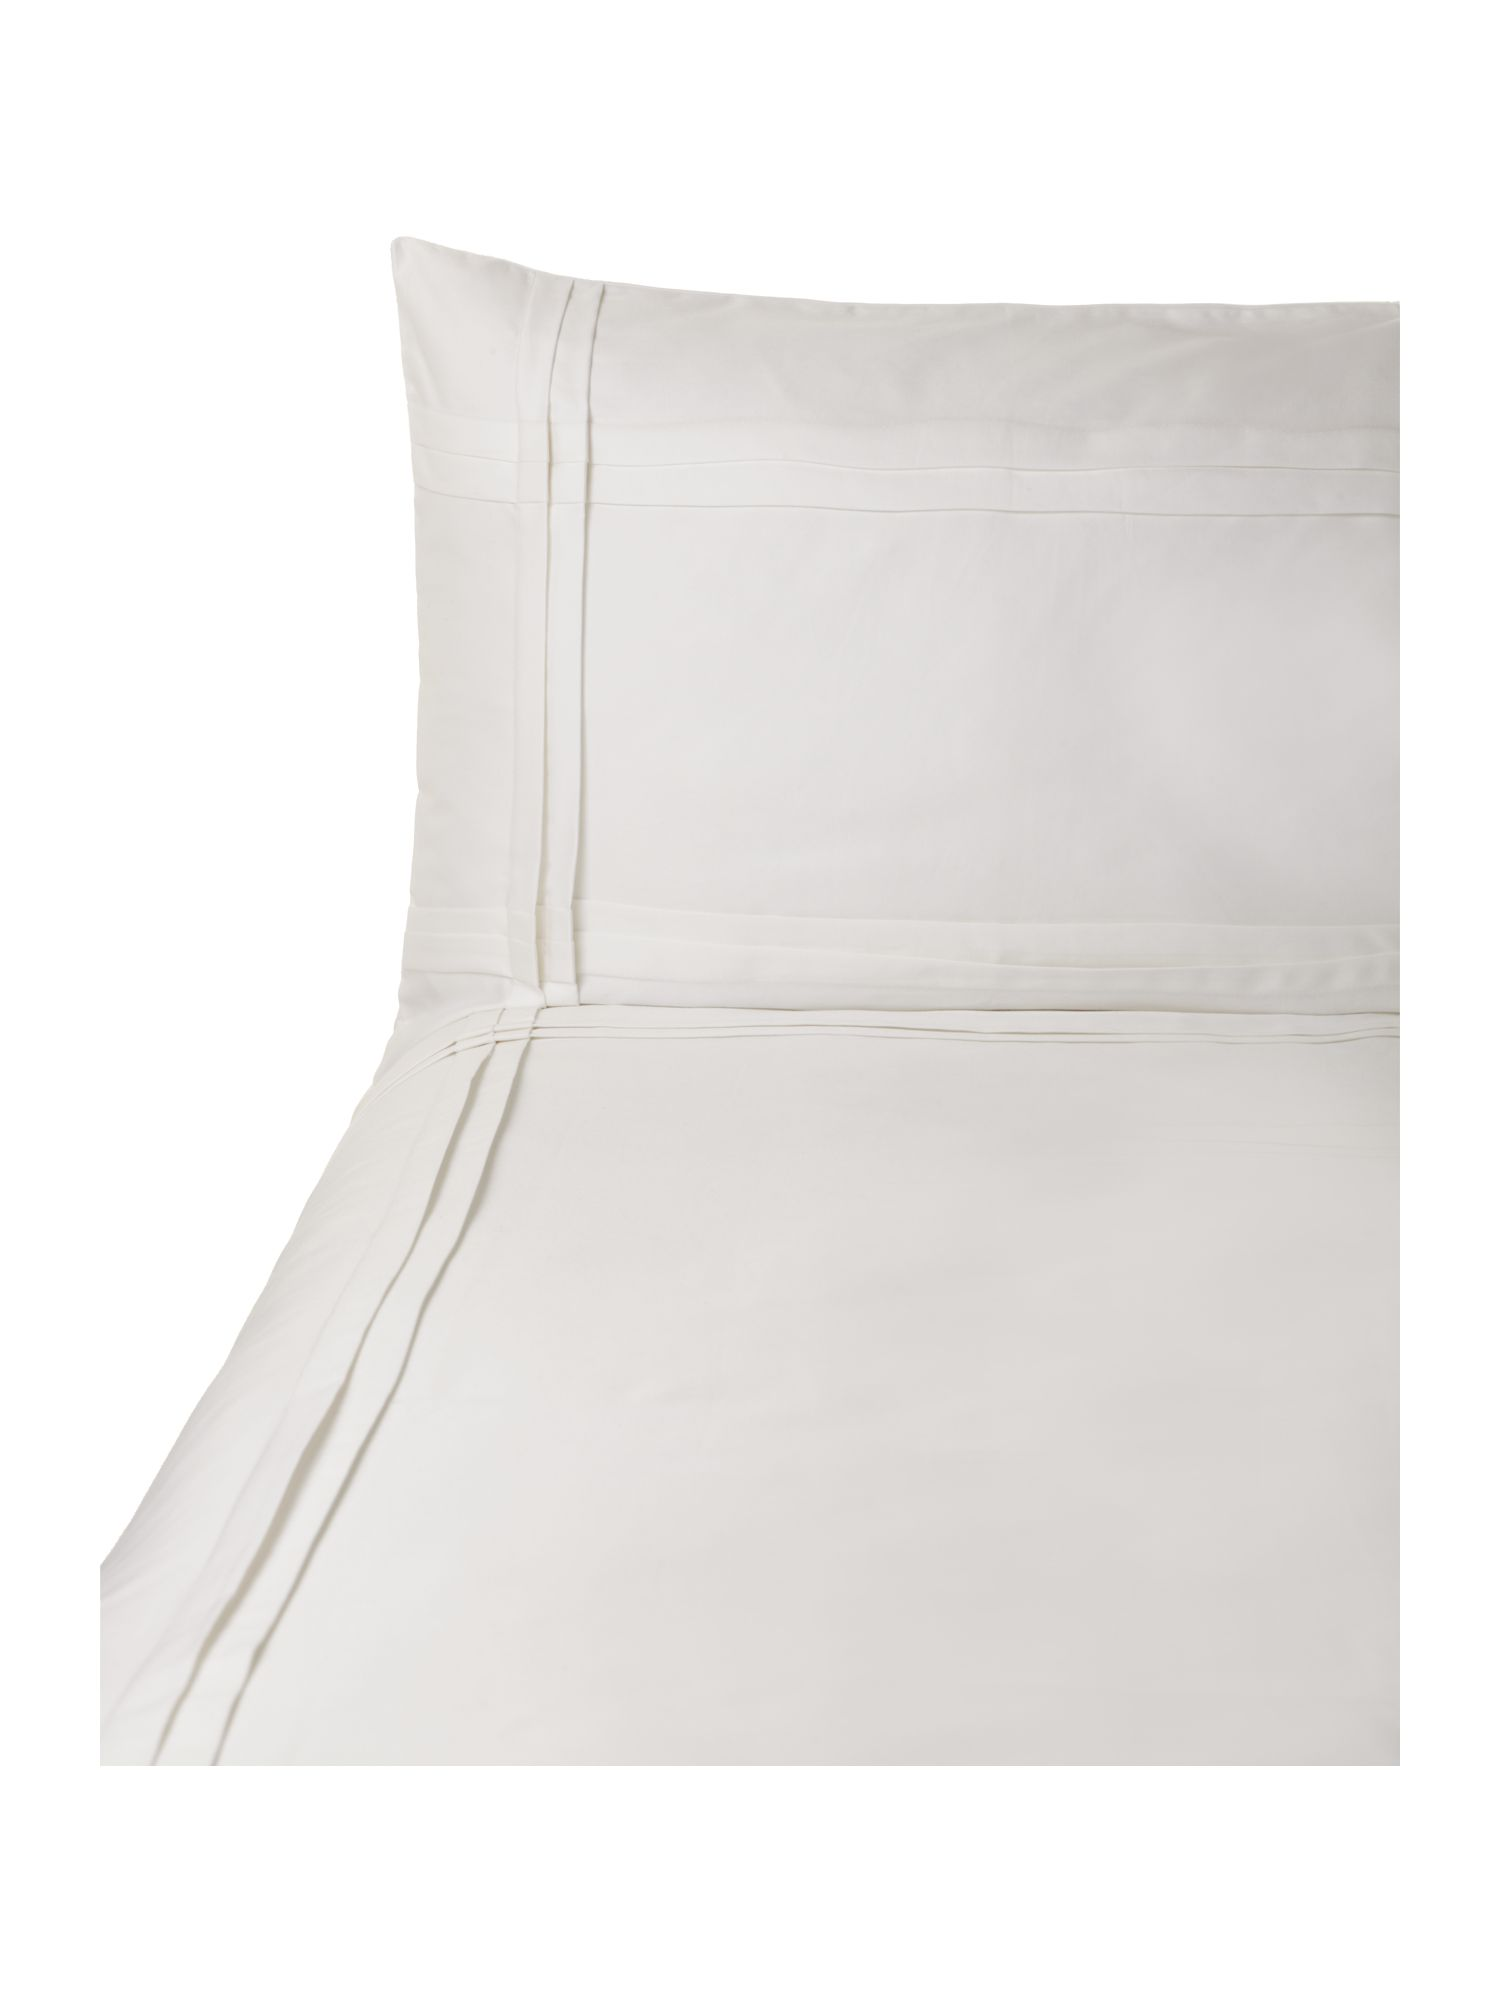 Criss cross pleat bed linen in white